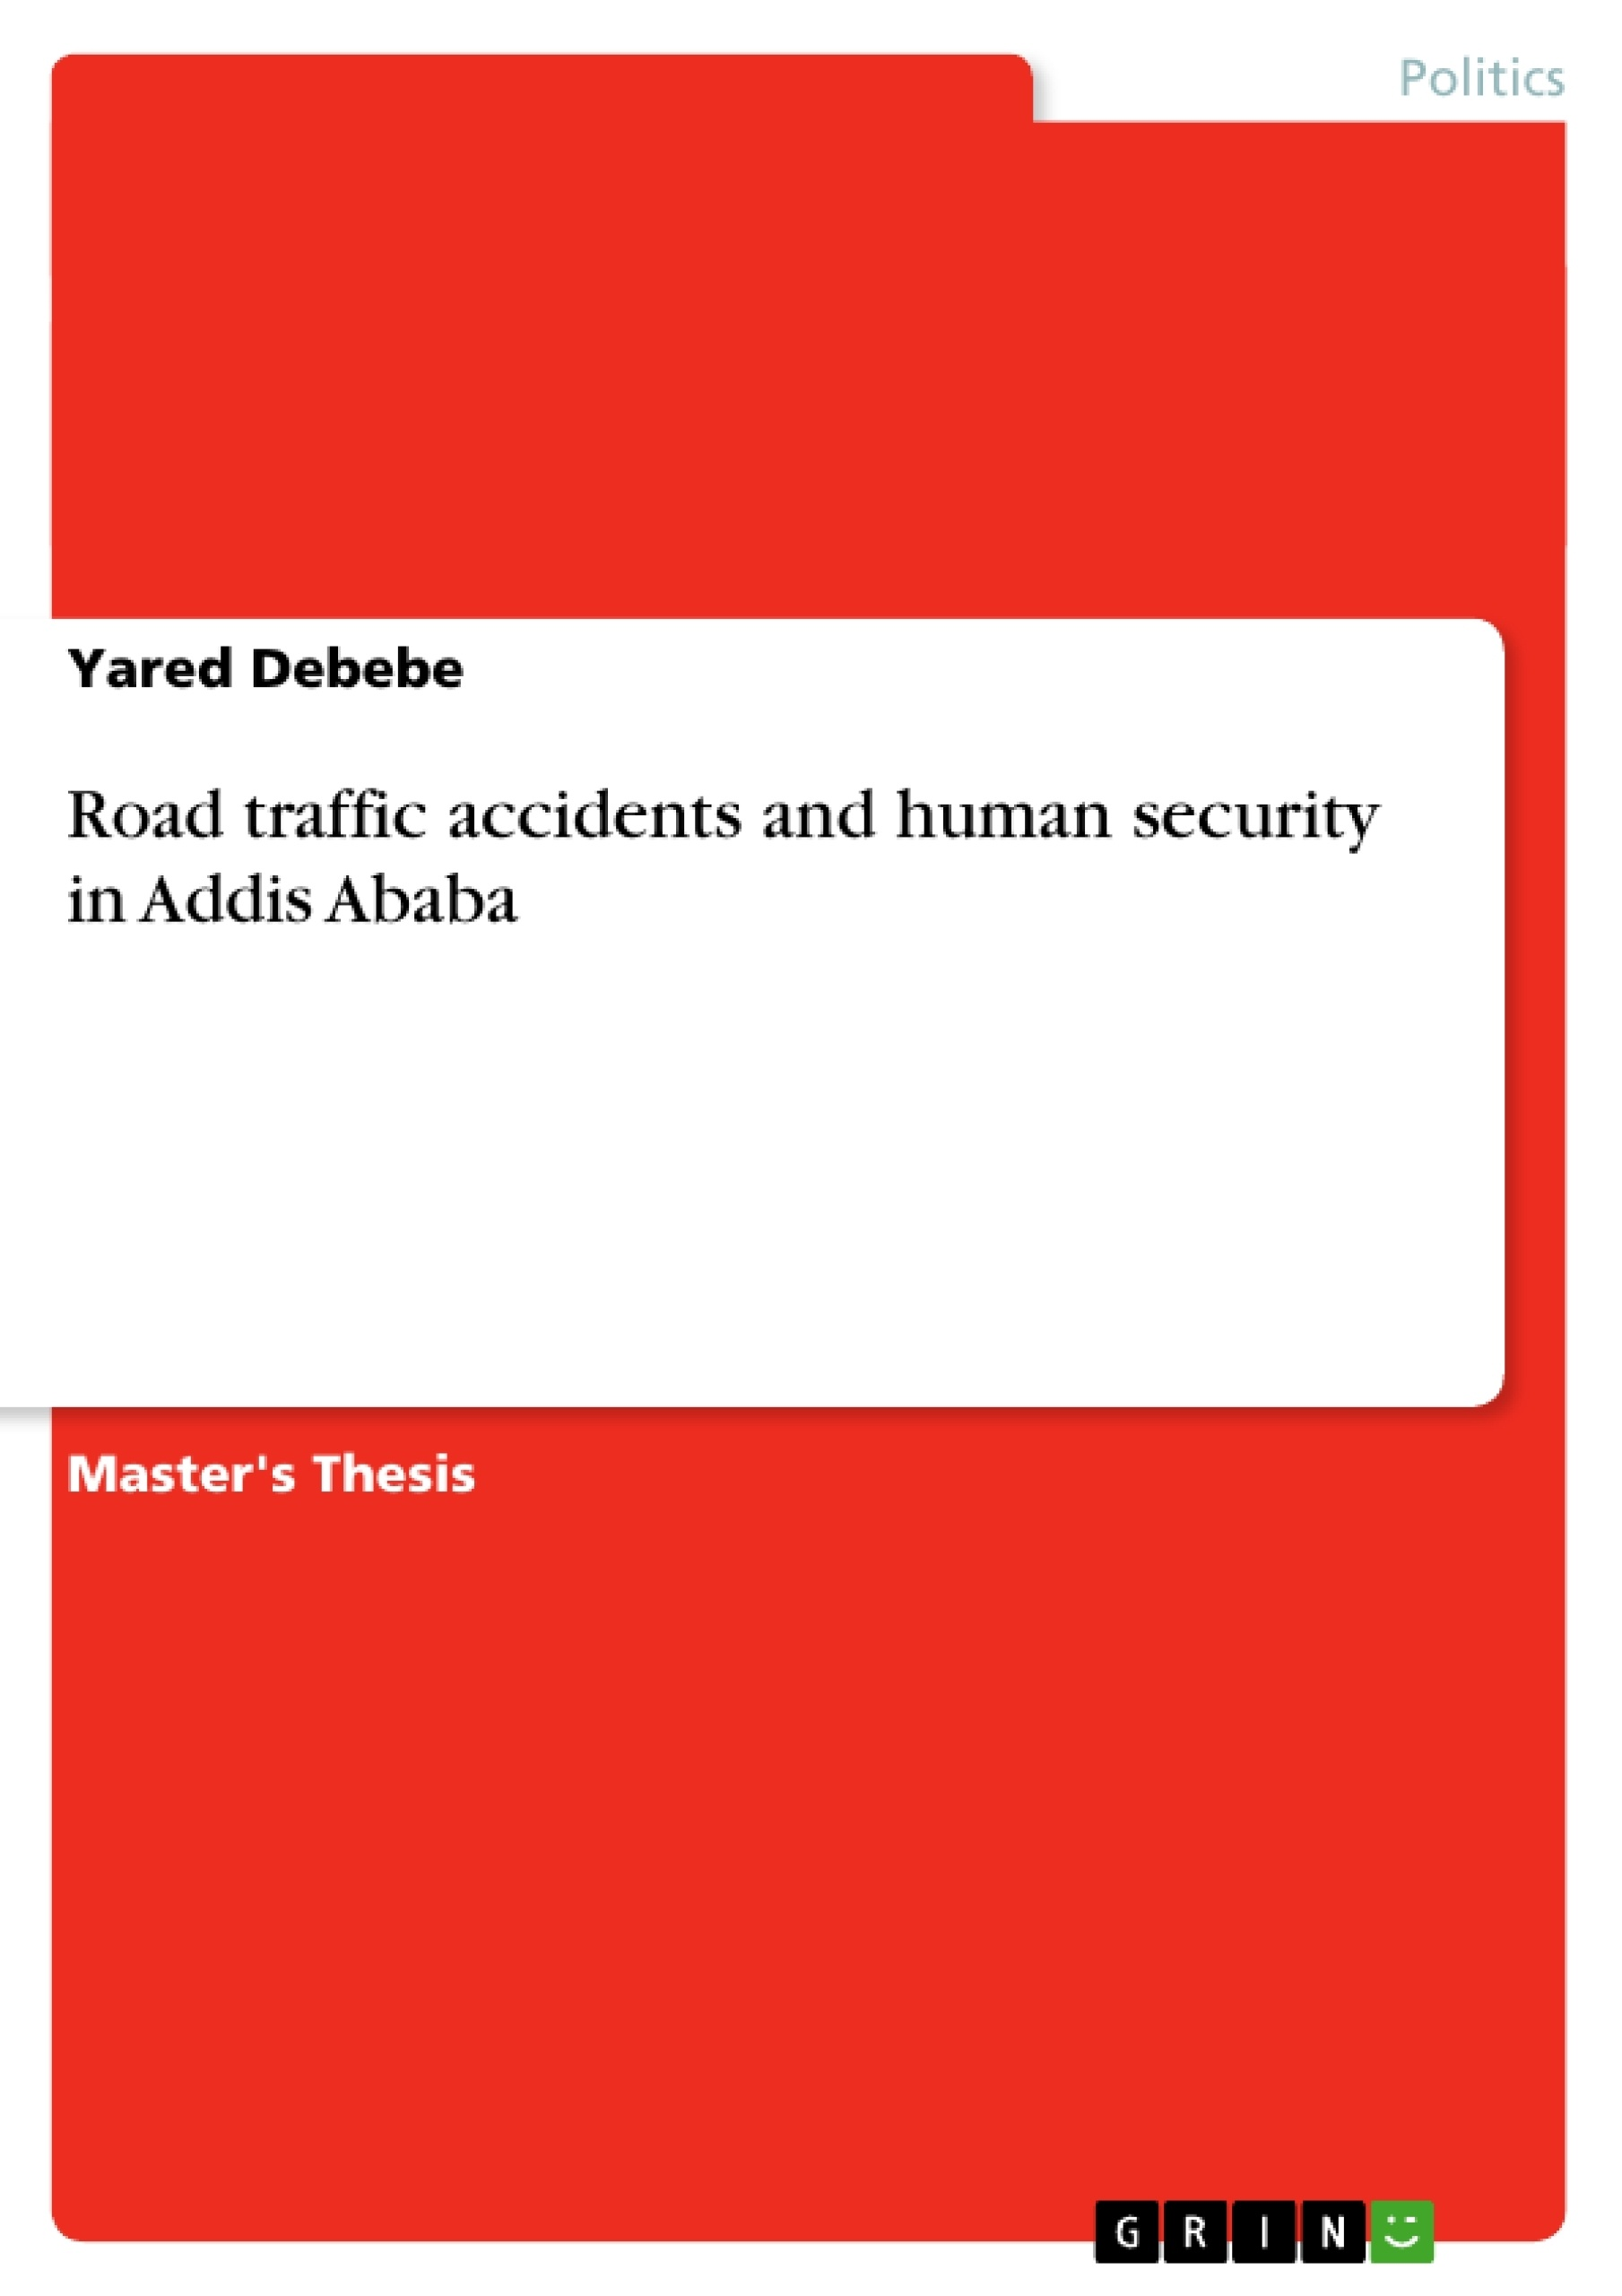 Title: Road traffic accidents and human security in Addis Ababa